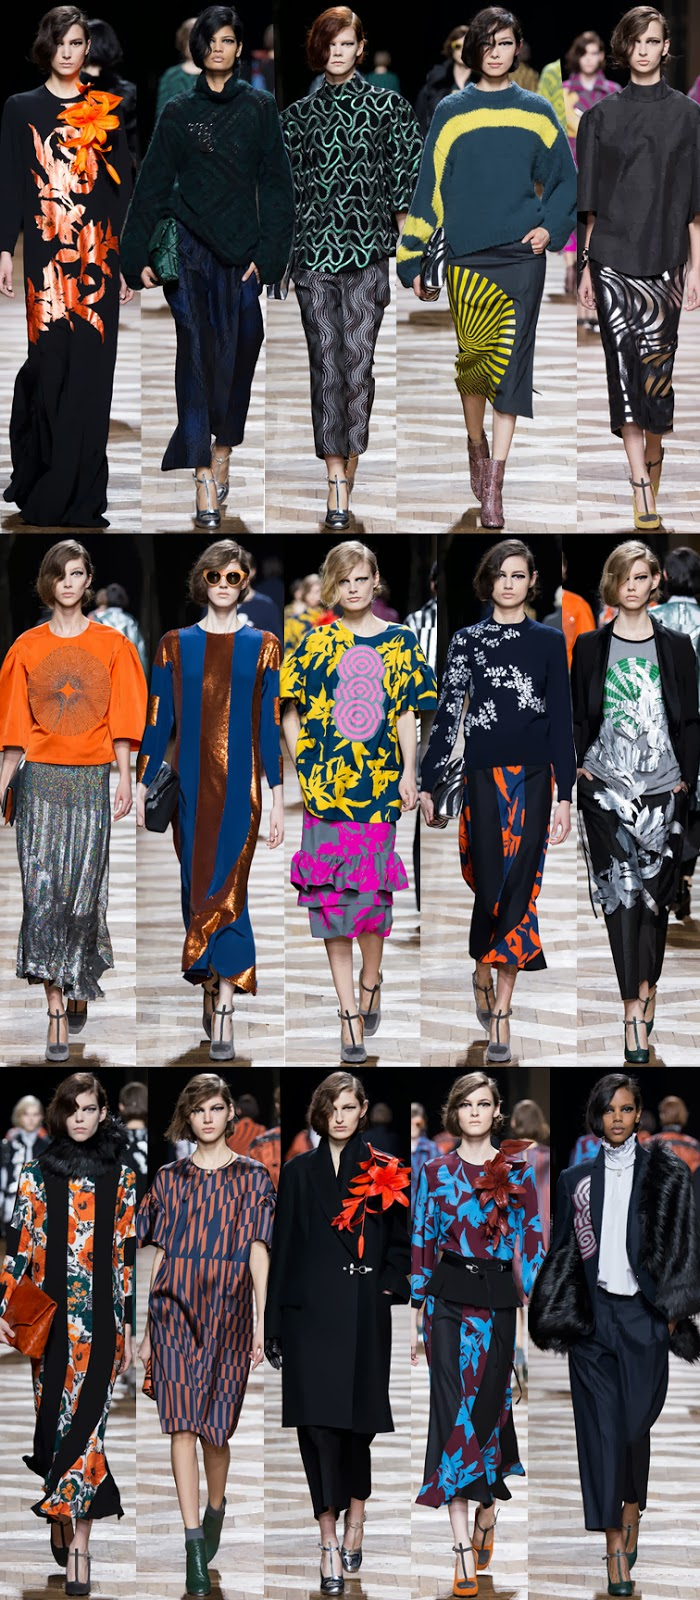 Dries Van Noten fall winter 2014 runway collection, PFW, Paris fashion week, FW14, AW14